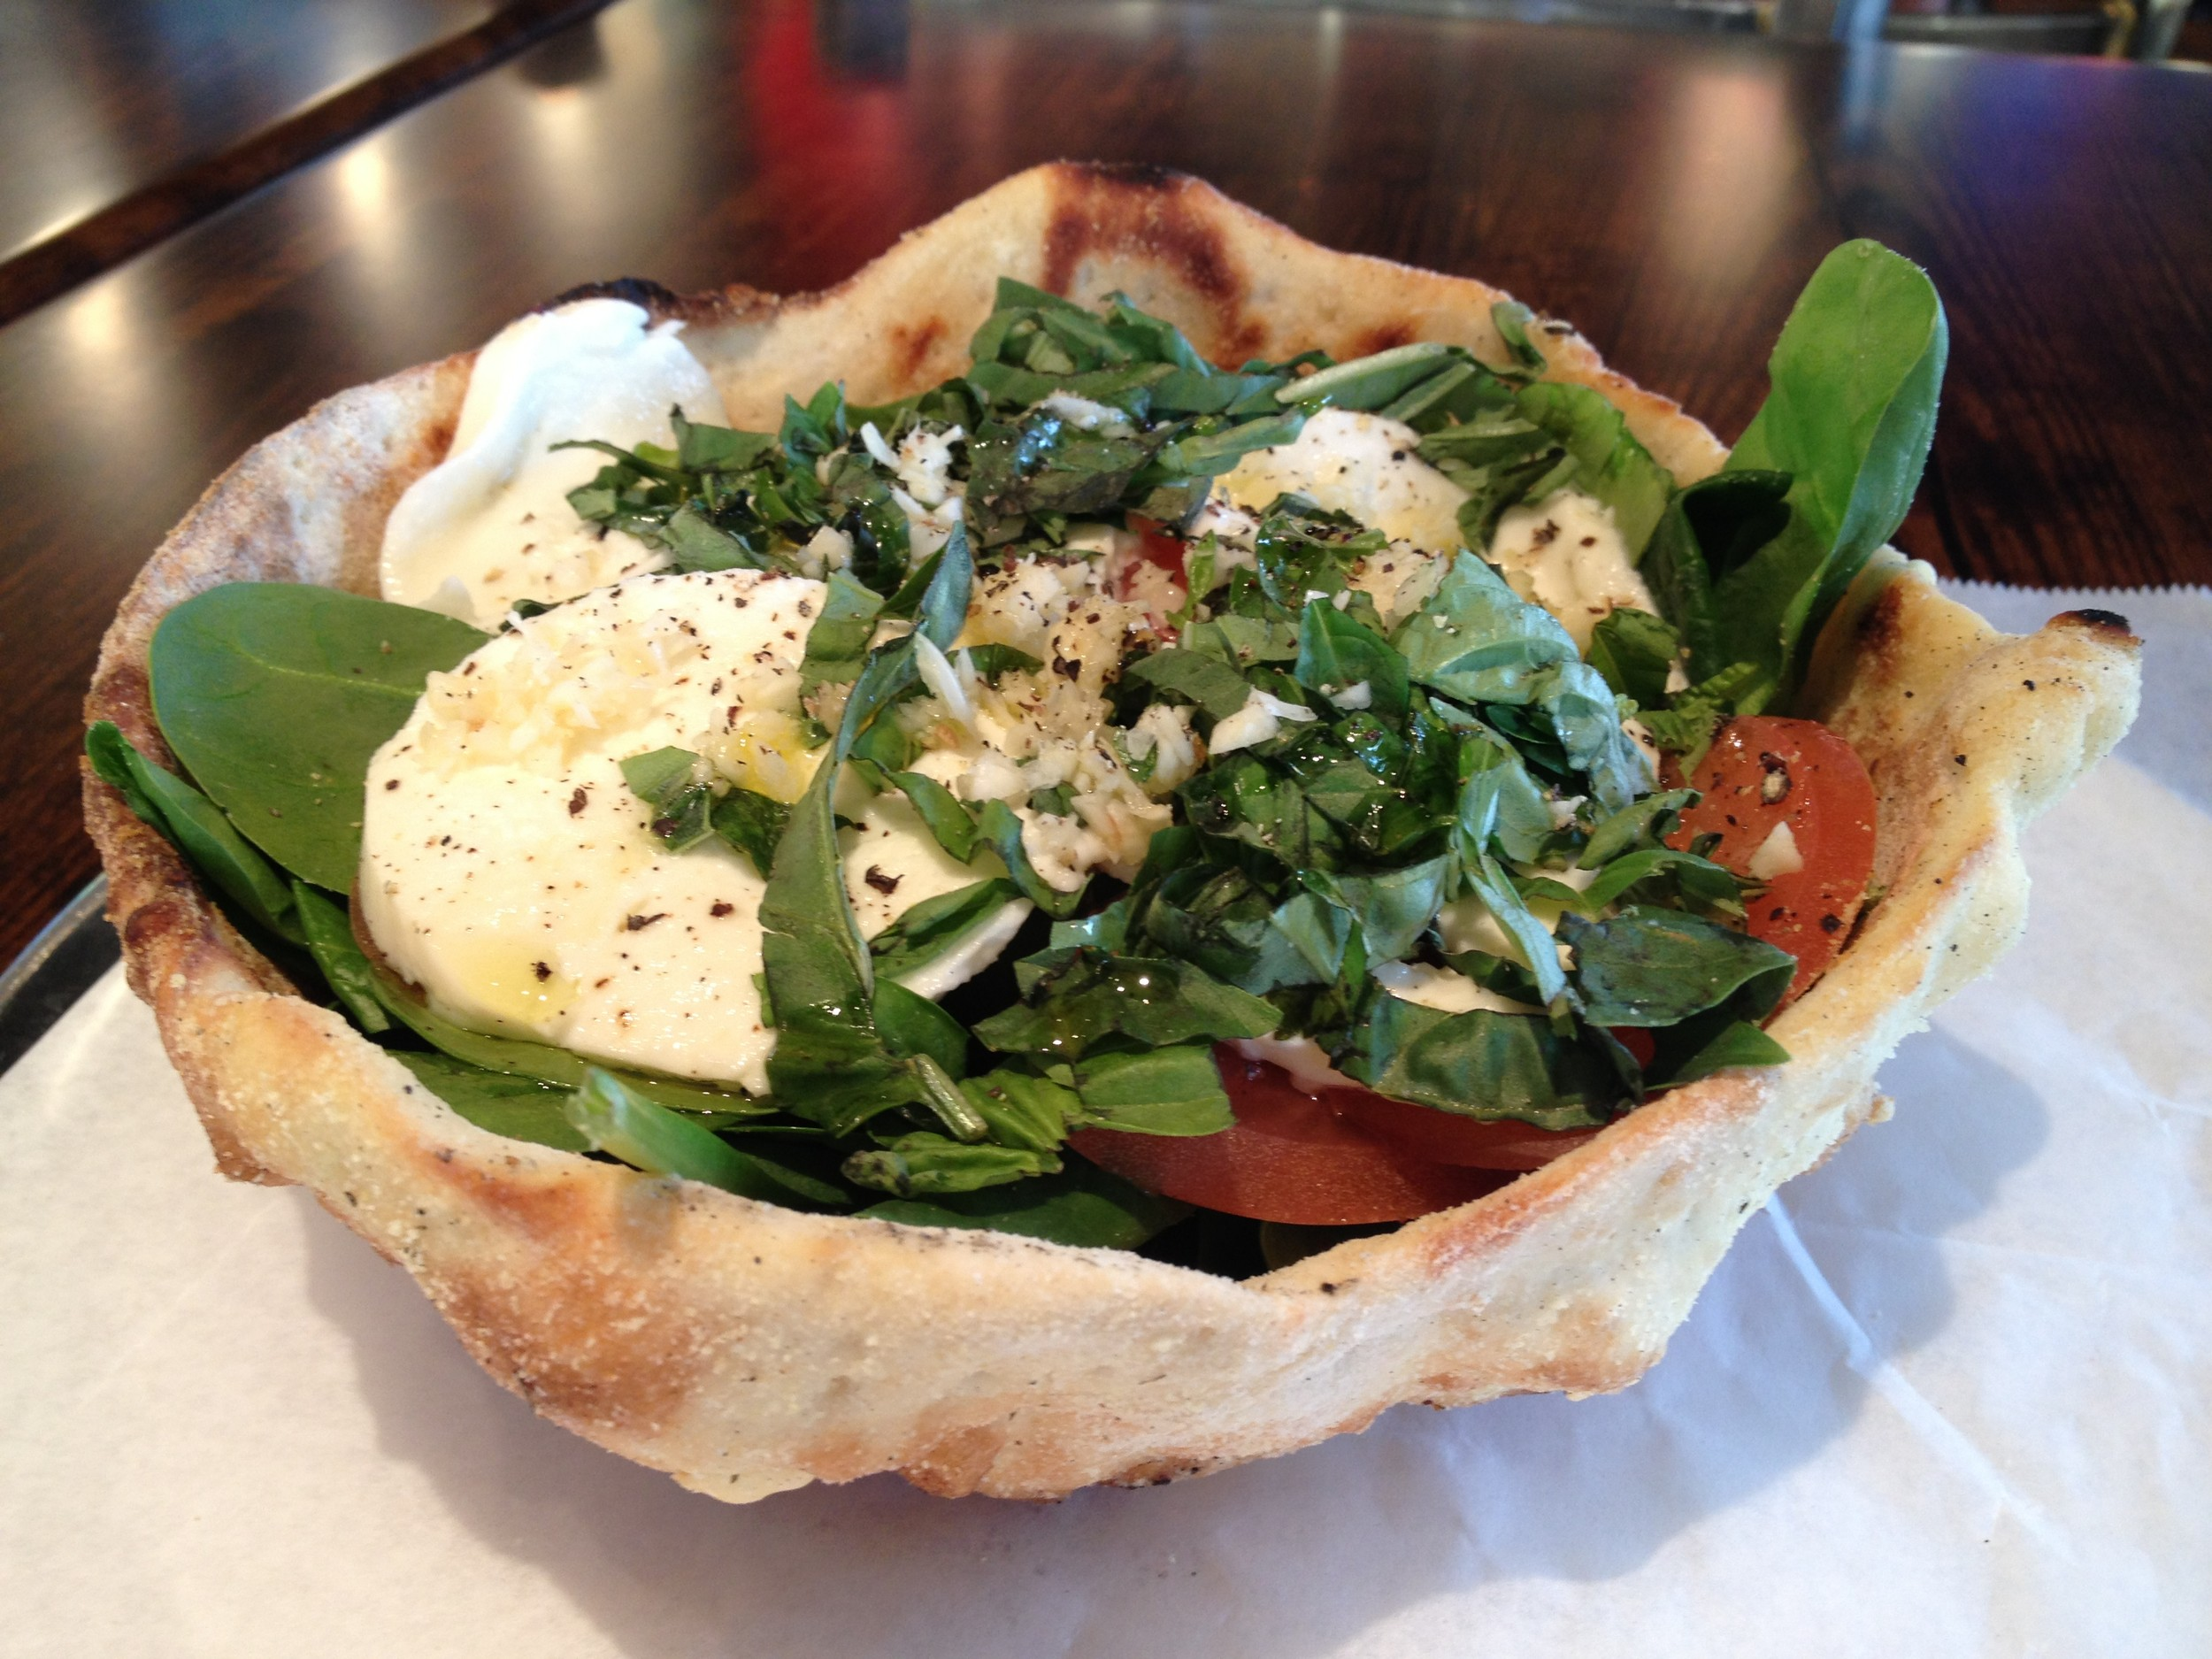 The caprese salad is filled with slices of fresh mozzarella, leafy spinach, tomatoes and shredded basil with extra virgin olive oil and a side of balsamic dressing, served in a baked pizza-dough bowl.